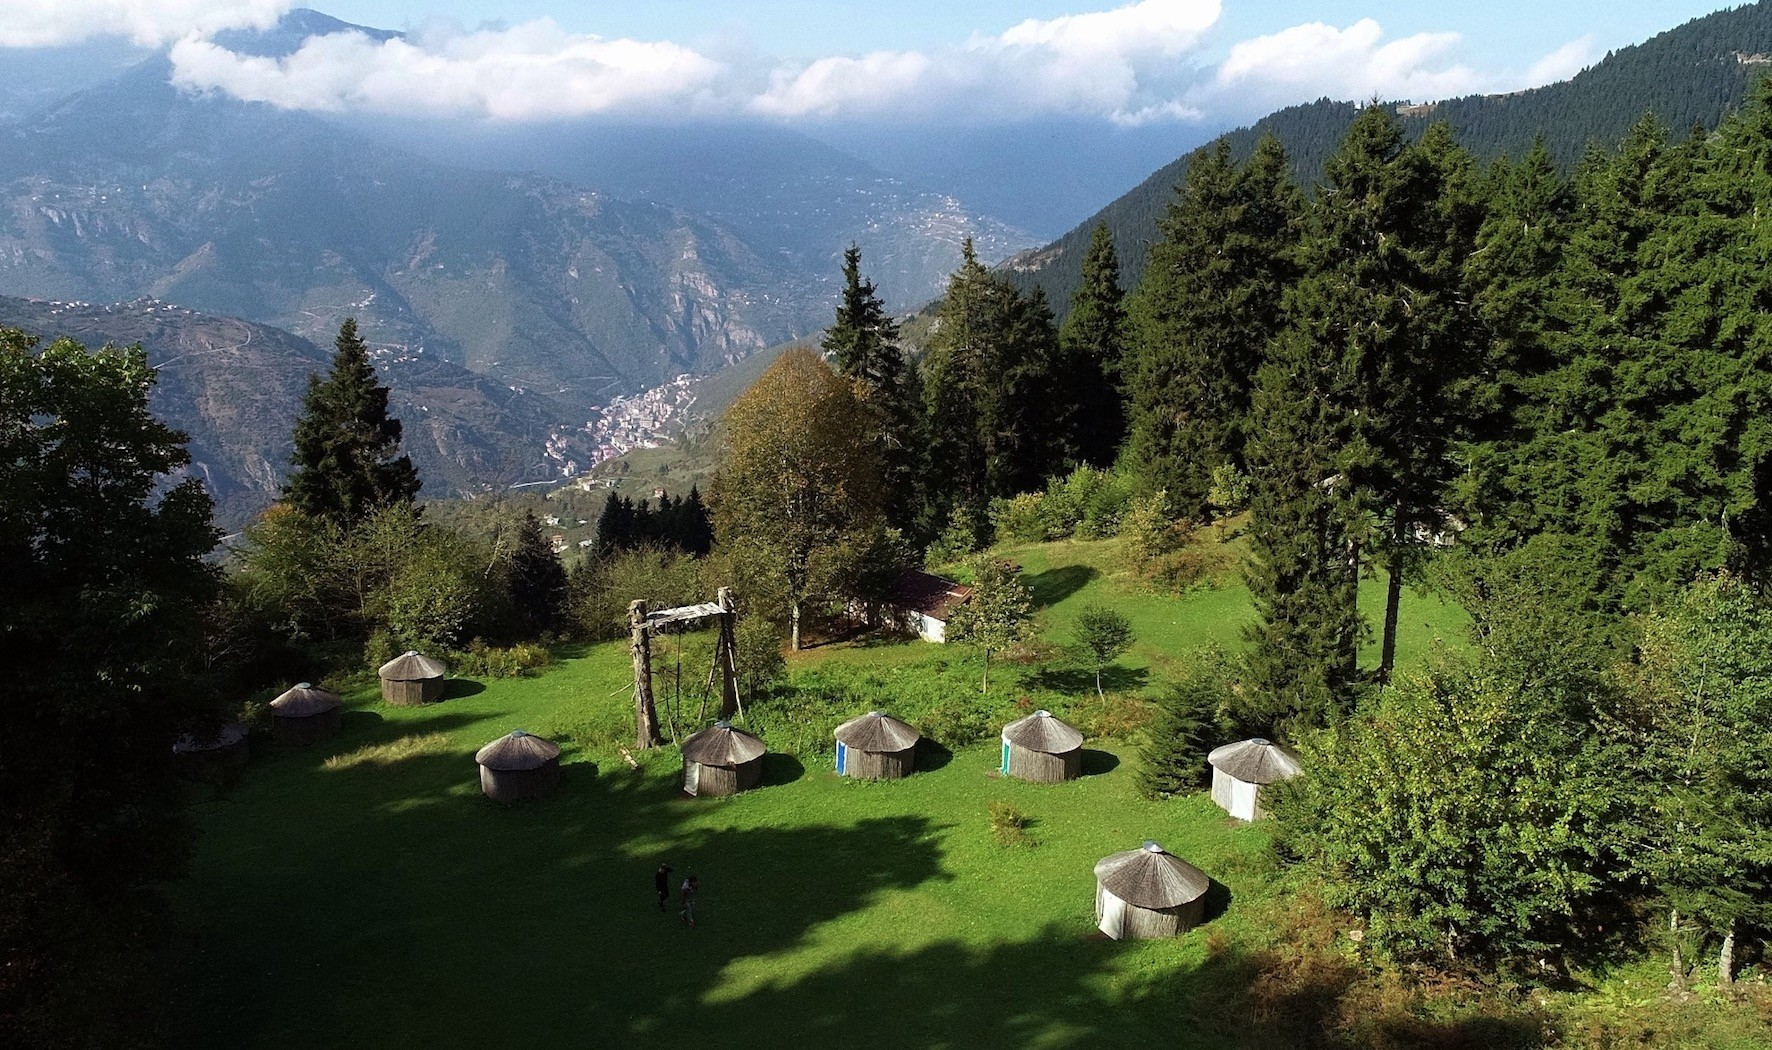 Located in Trabzon, near Mau00e7ka, the nomad tents serve as a passage to the Turksu2019 ancient way of living, as well as a popular spot for ecotourism.